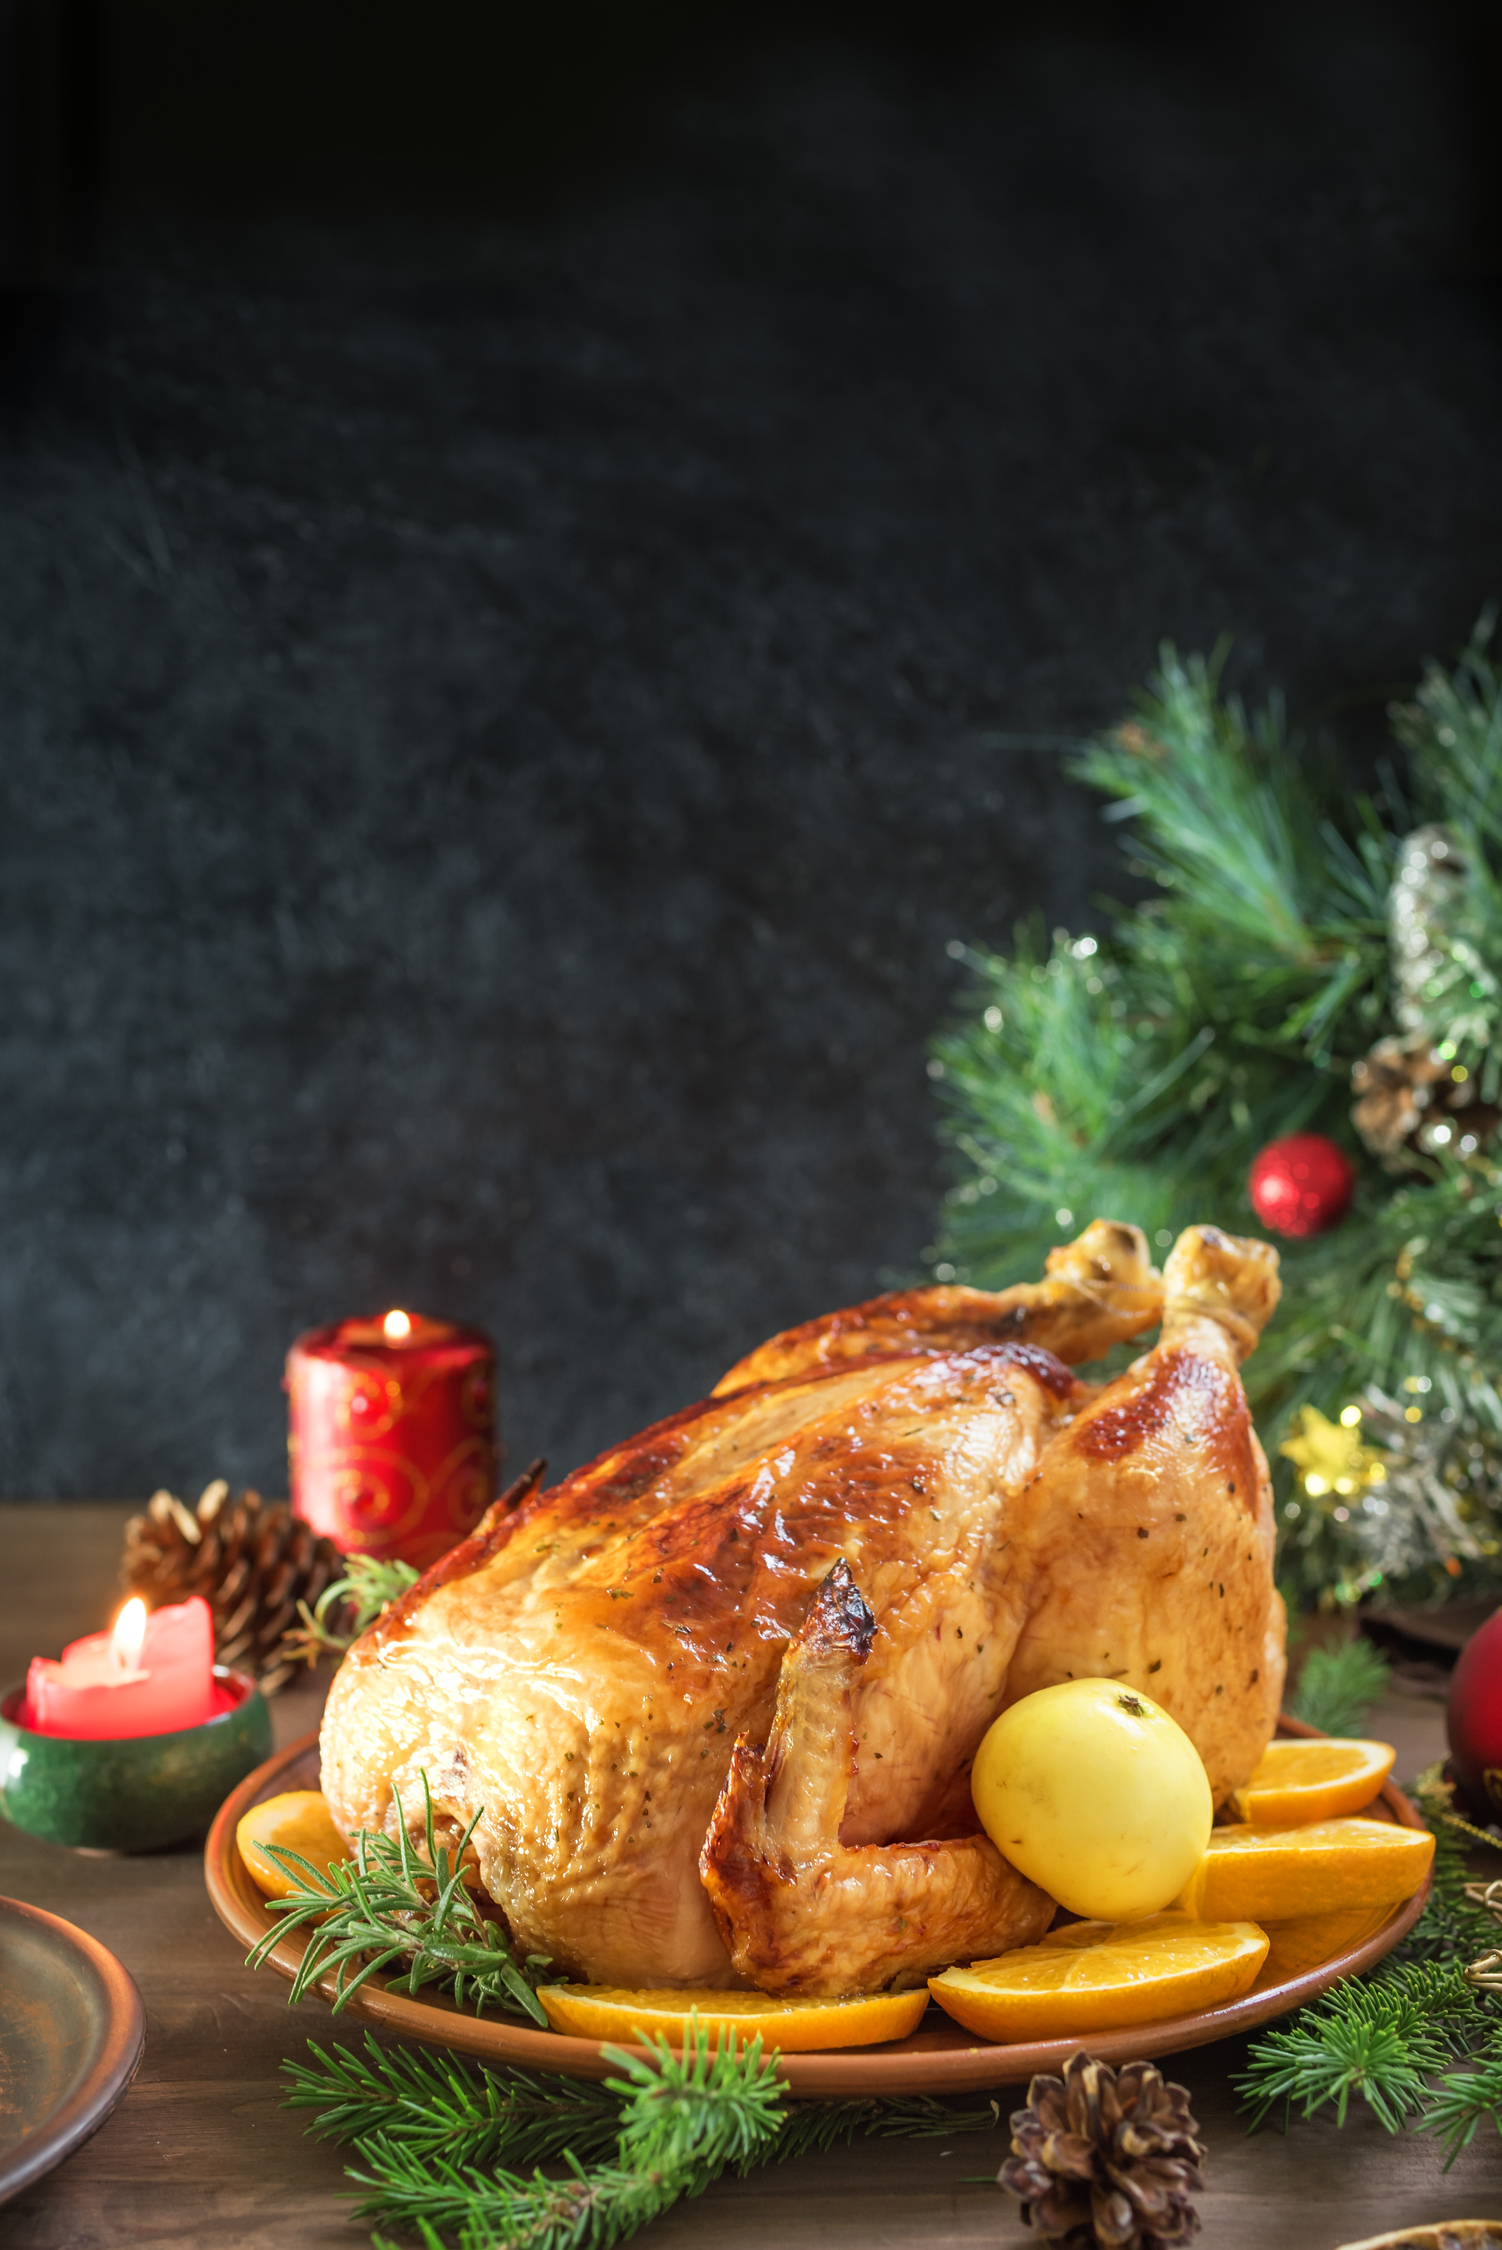 Cooking a whole turkey in an Instant Pot for Christmas